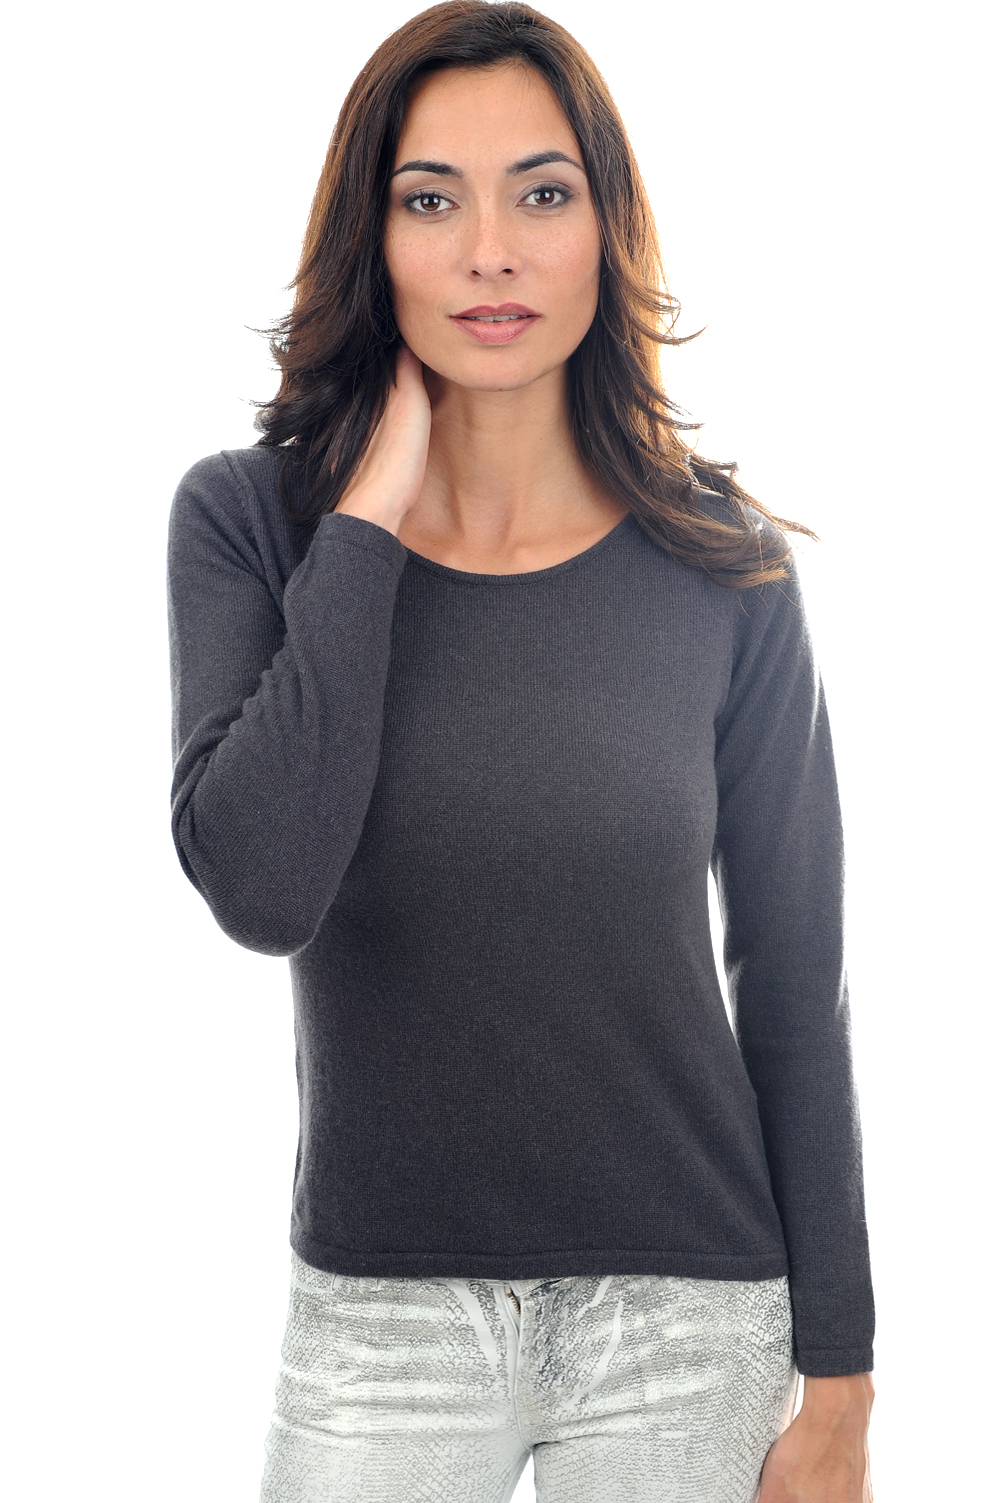 cashmere ladies round necks solange matt charcoal l